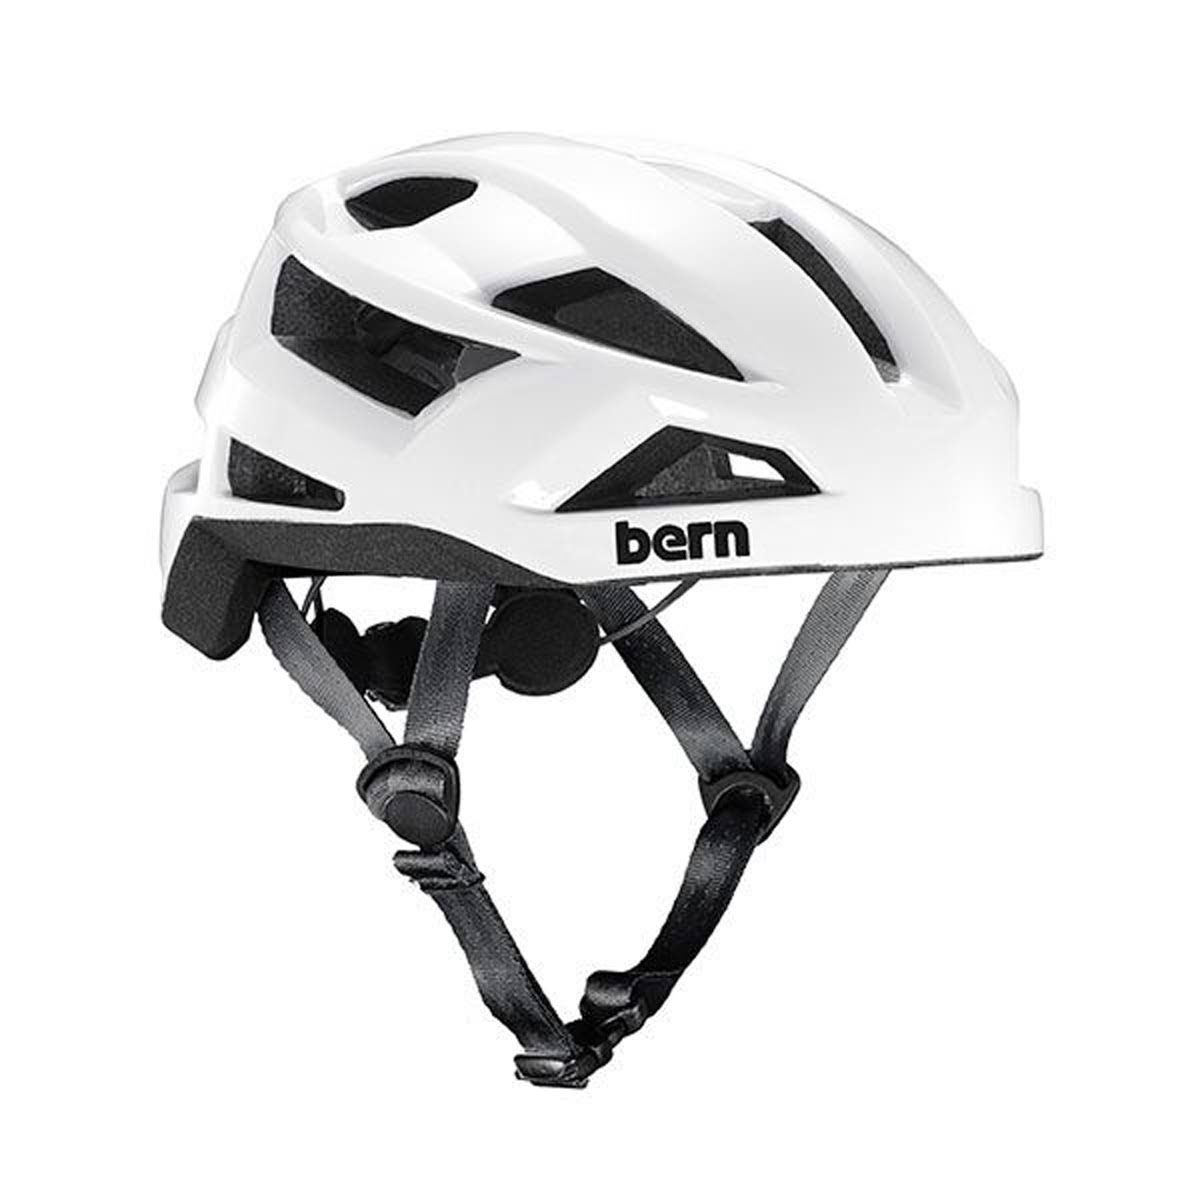 Bern Men's Libre Bike Helmet - White